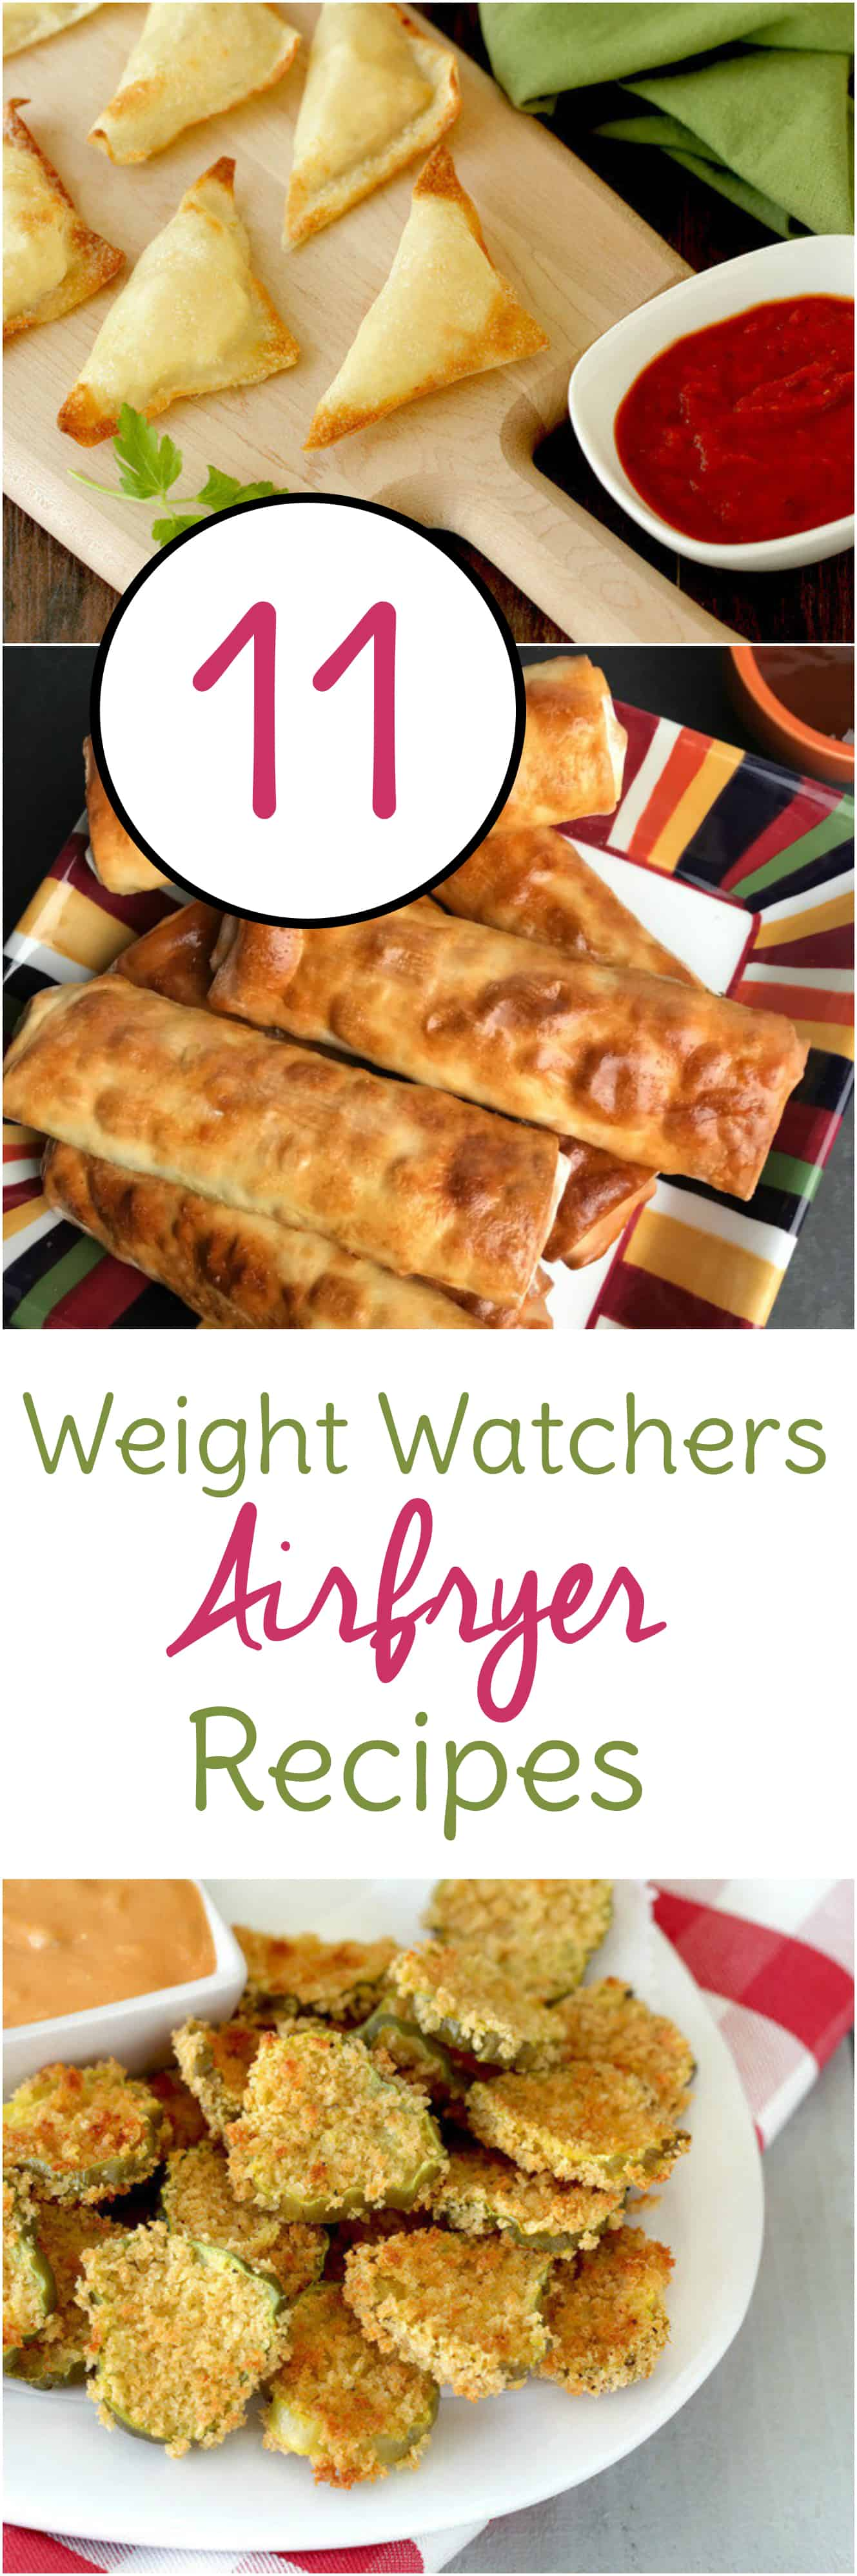 Weight Watchers Air Fryer Recipes 11 Easy Recipes To Try